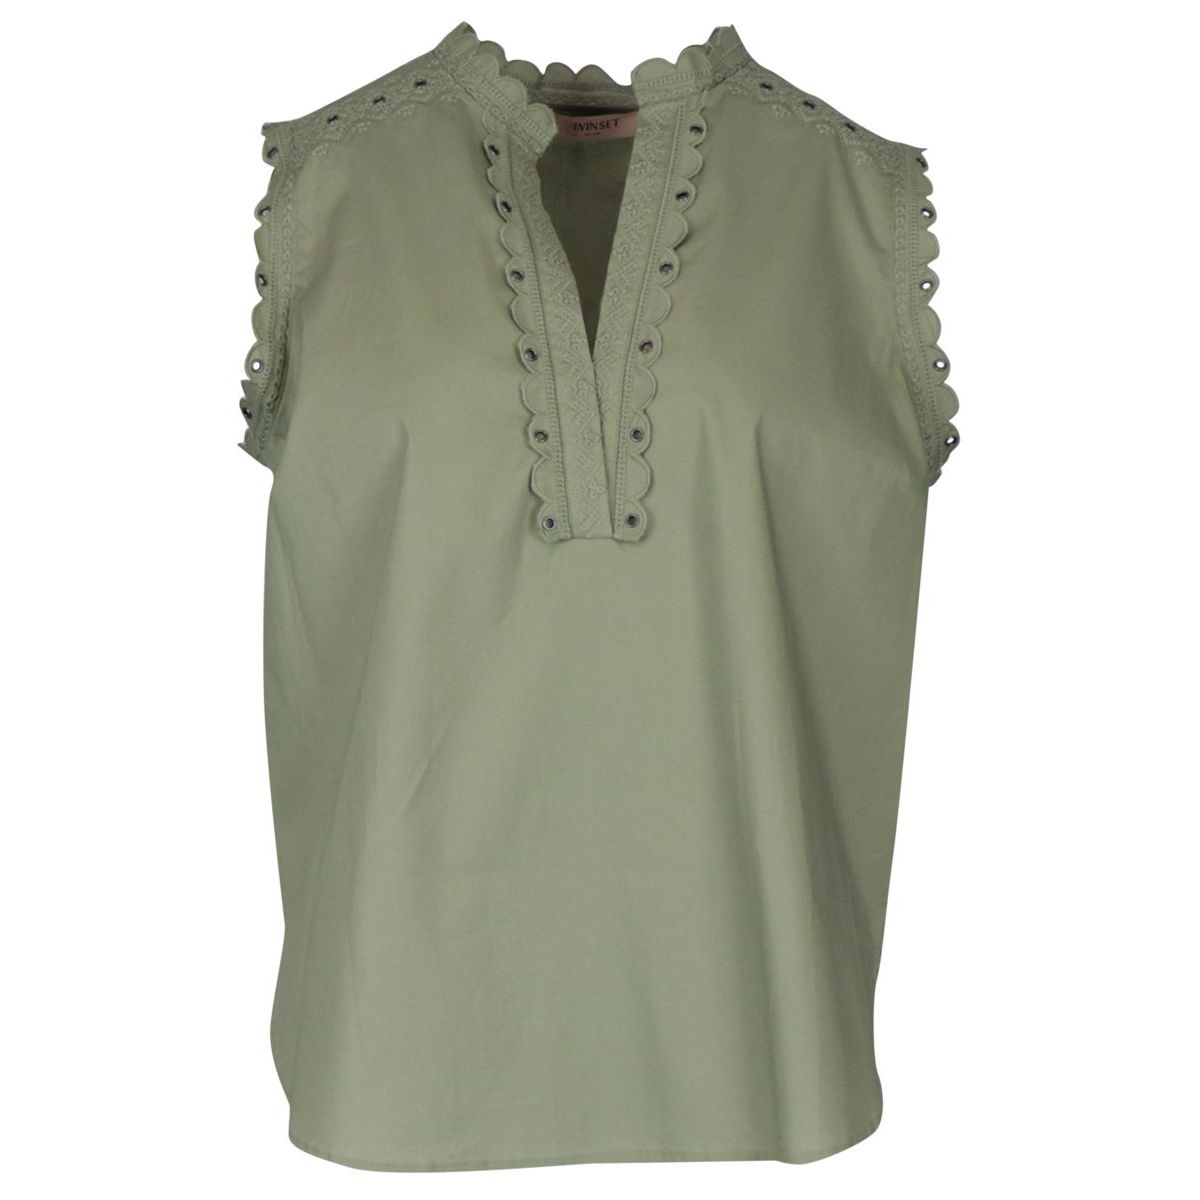 Cotton poplin top with embroidery Military Twin-Set